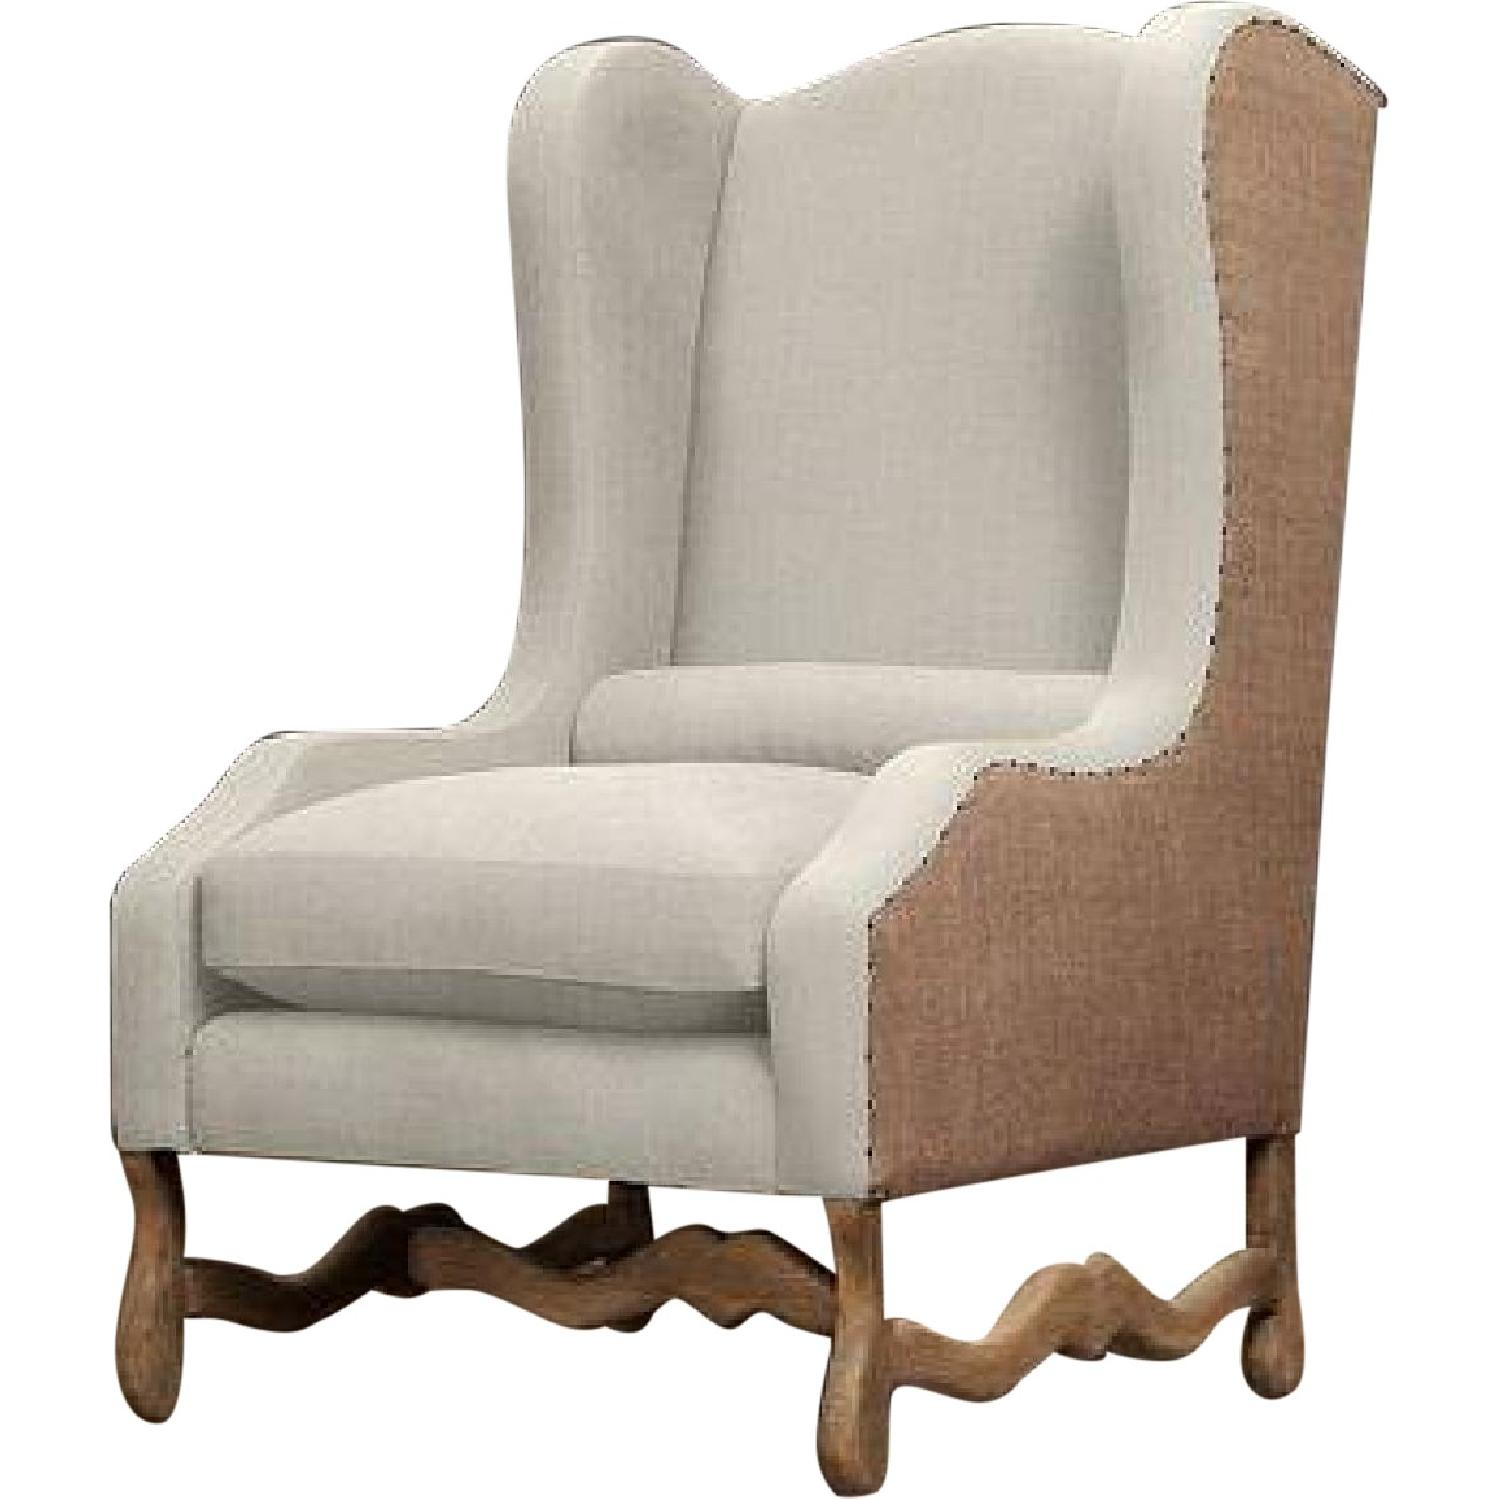 Restoration Hardware Os De Mouton Wingback Chair ...